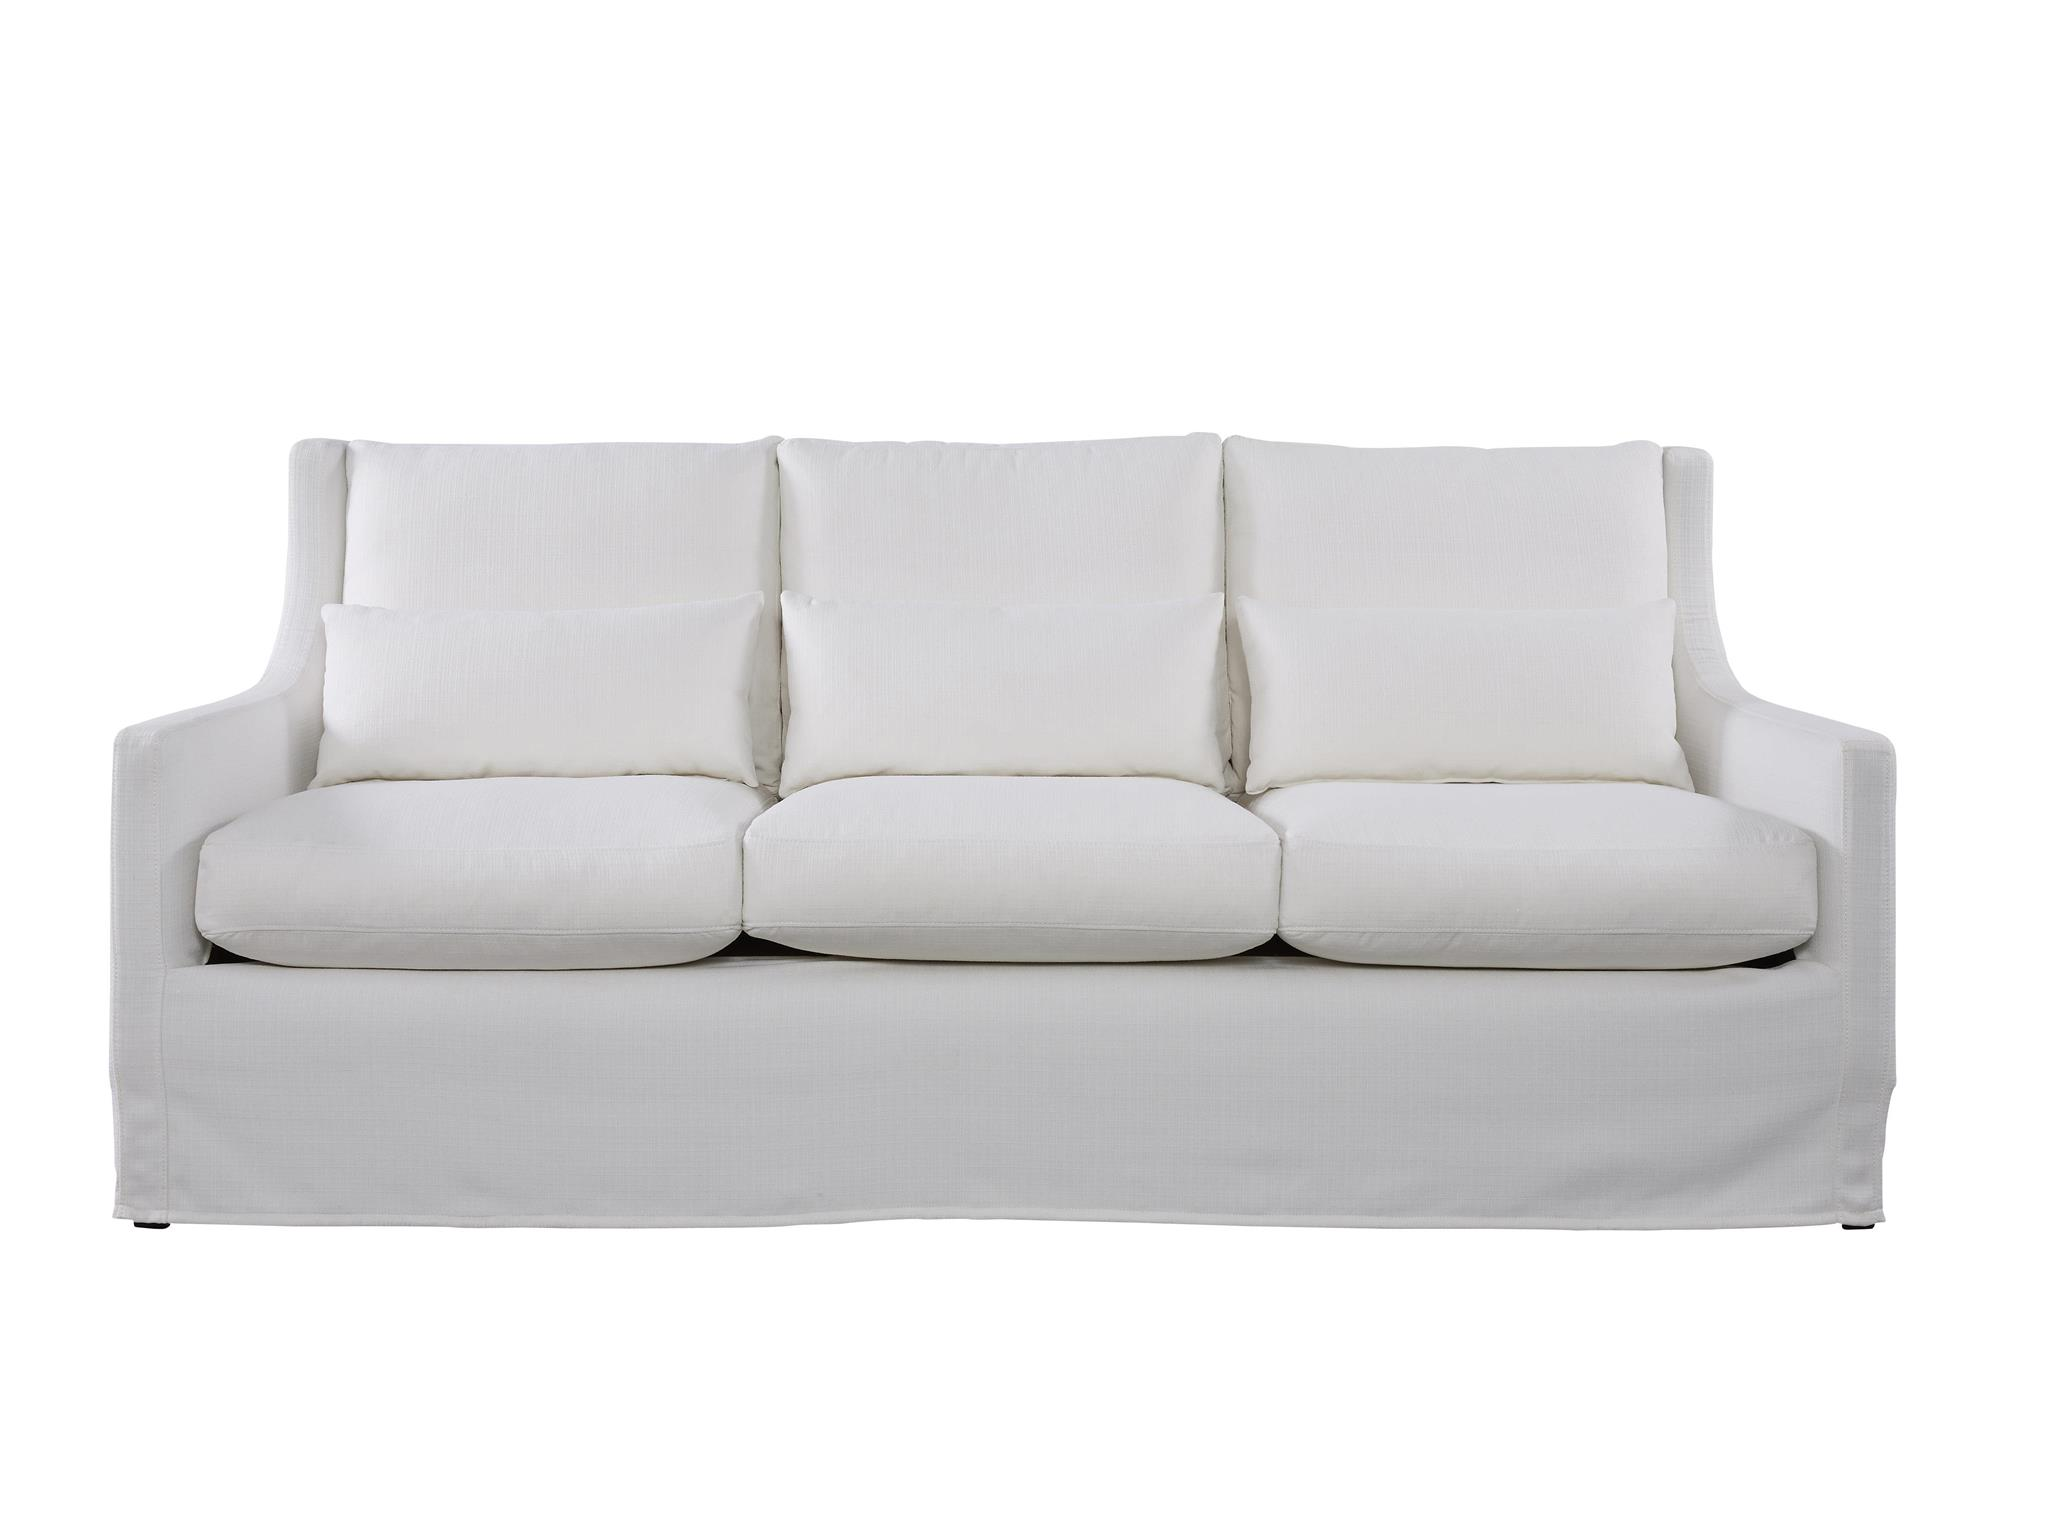 Sofa House Manufacturers Universal Furniture Upholstery Sofas